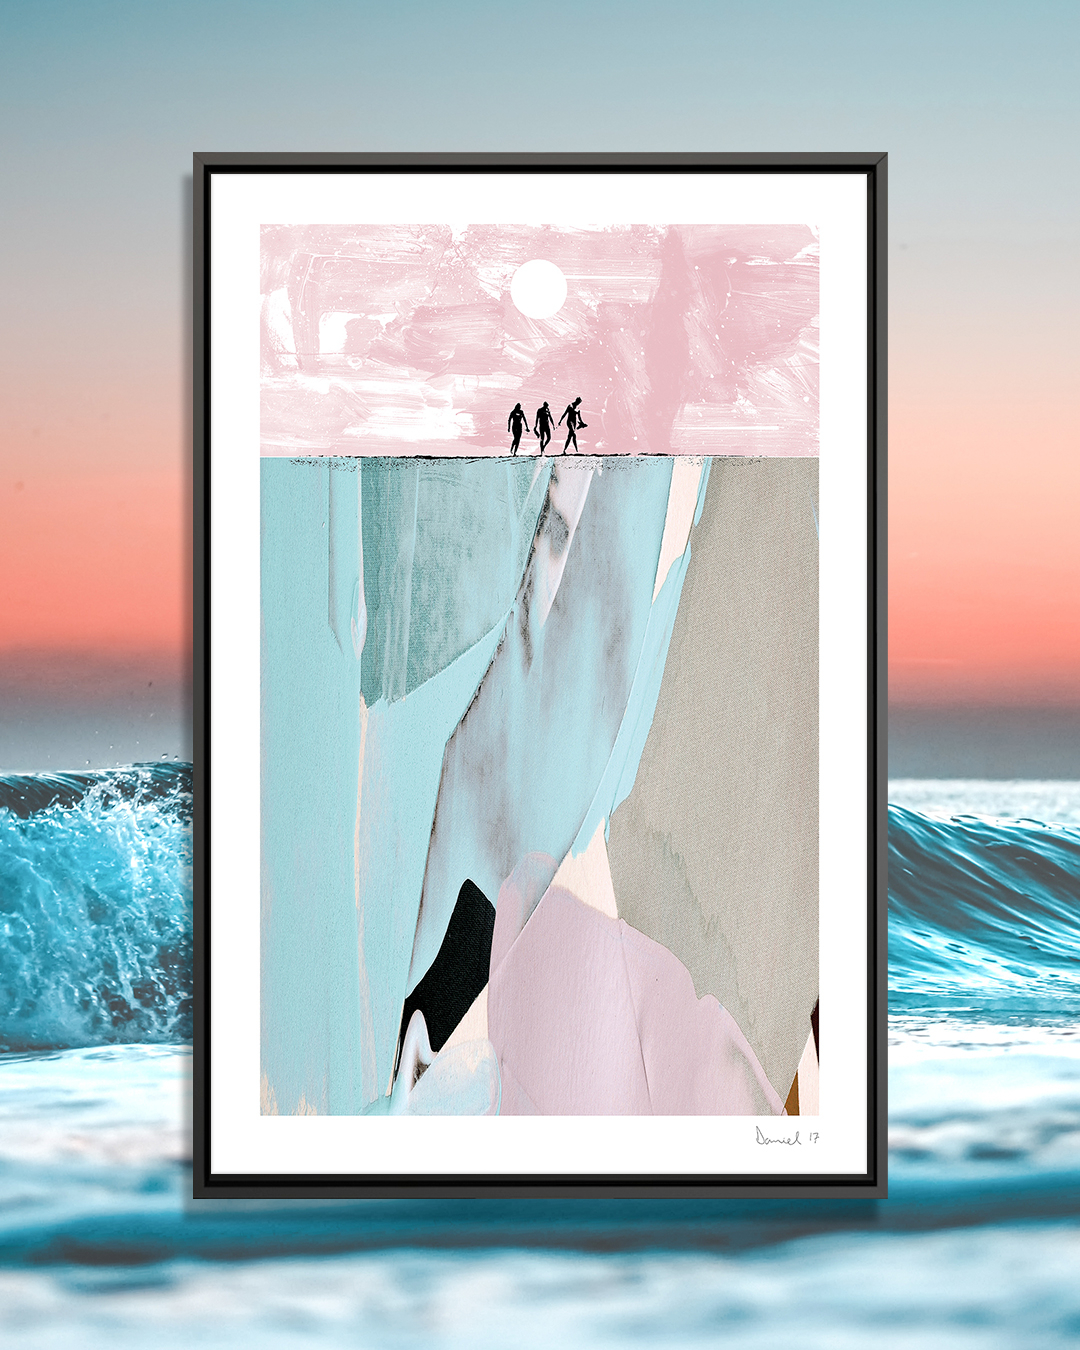 Surfers by Dan Hobday showcases an abstract image in light blue, light pink, black, and gray, with a black line resembling a ground surface with silhouettes of three surfers walking across it